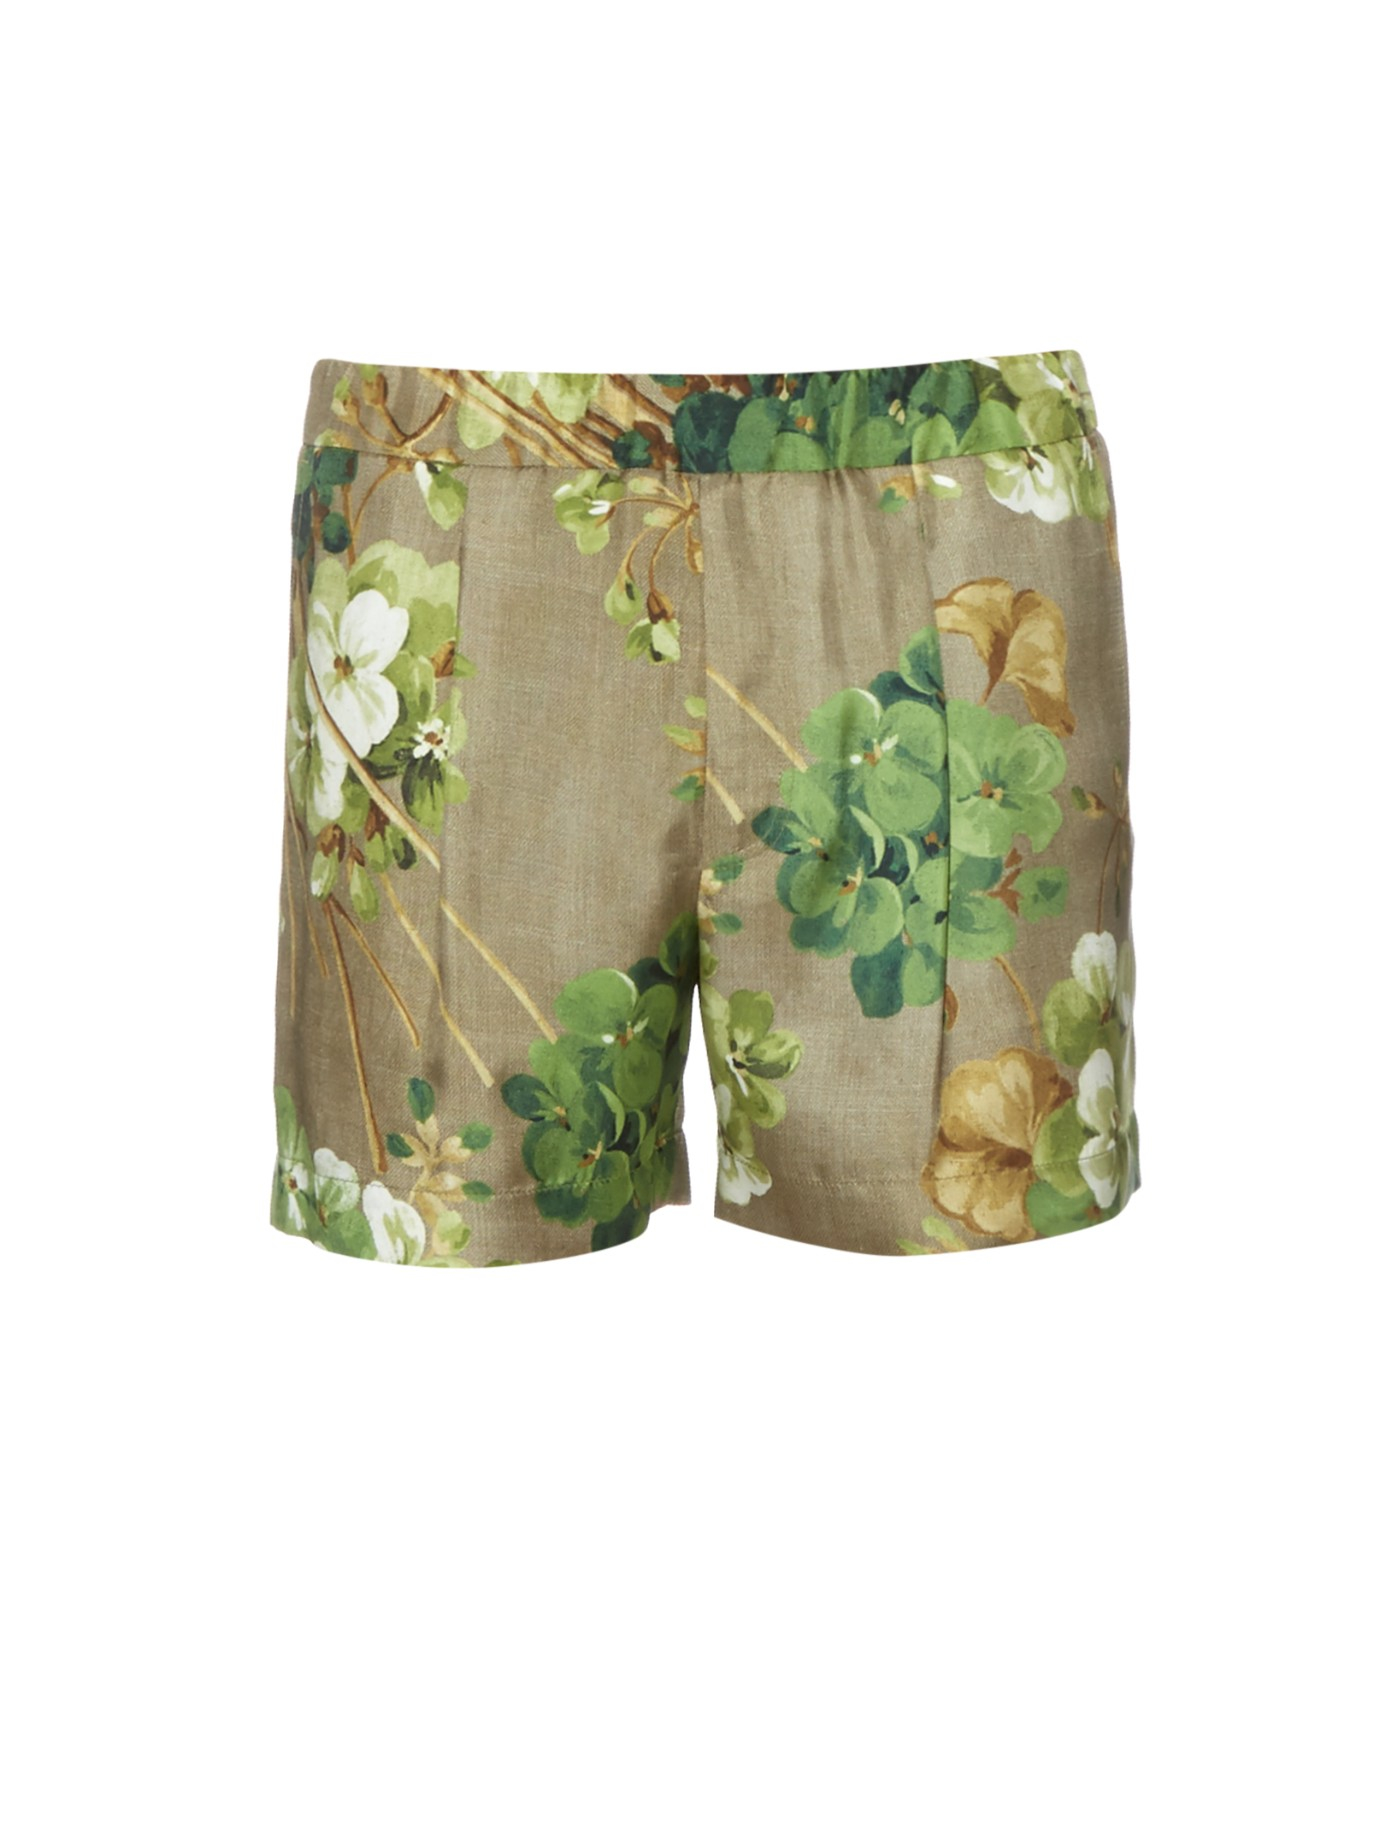 gucci-beige-multi-blooms-print-silk-shorts-beige-product-0-705387475-normal.jpeg